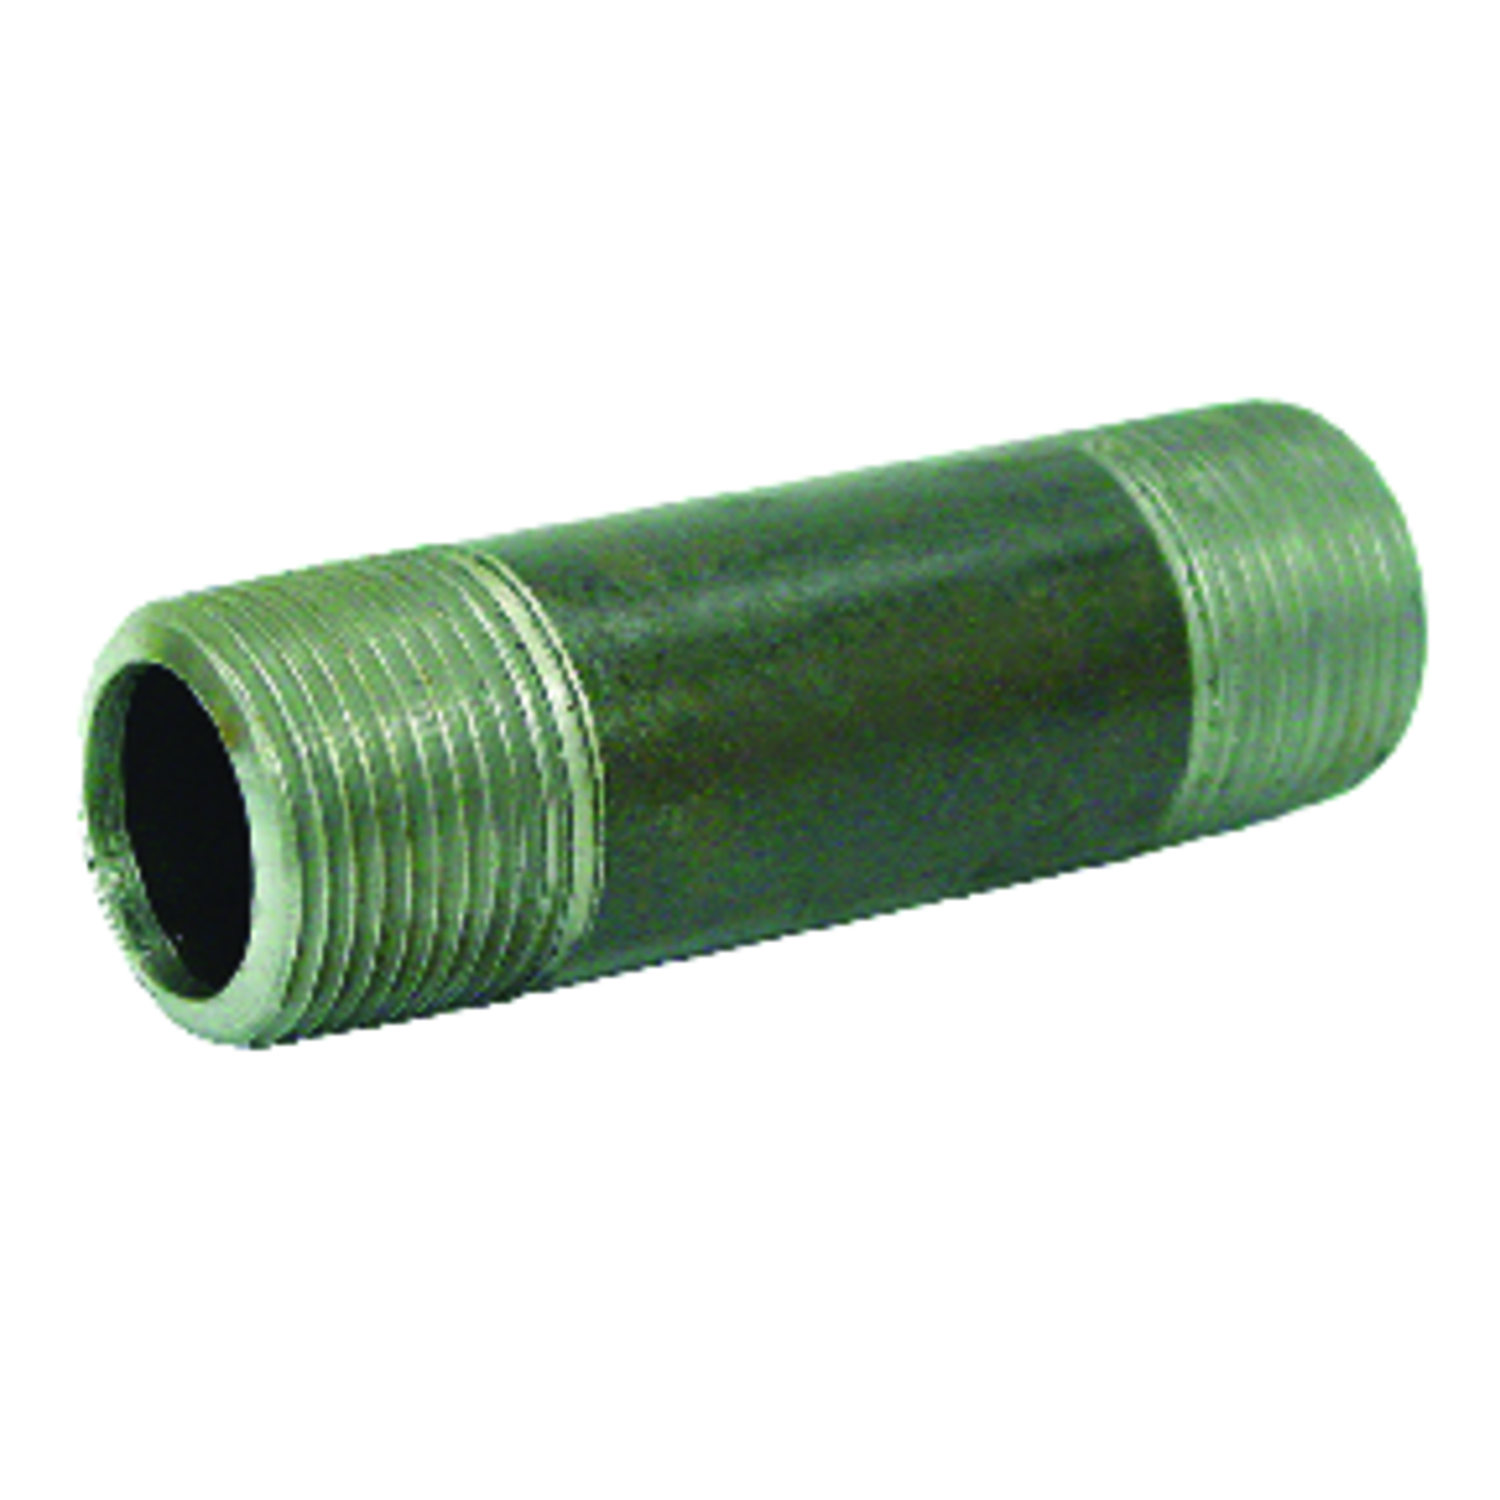 UPC 690291046865 product image for Anvil 1/2 in. MPT x 1/2 in. Dia. x 7 in. L MPT Galvanized Steel Pipe Nipple | upcitemdb.com